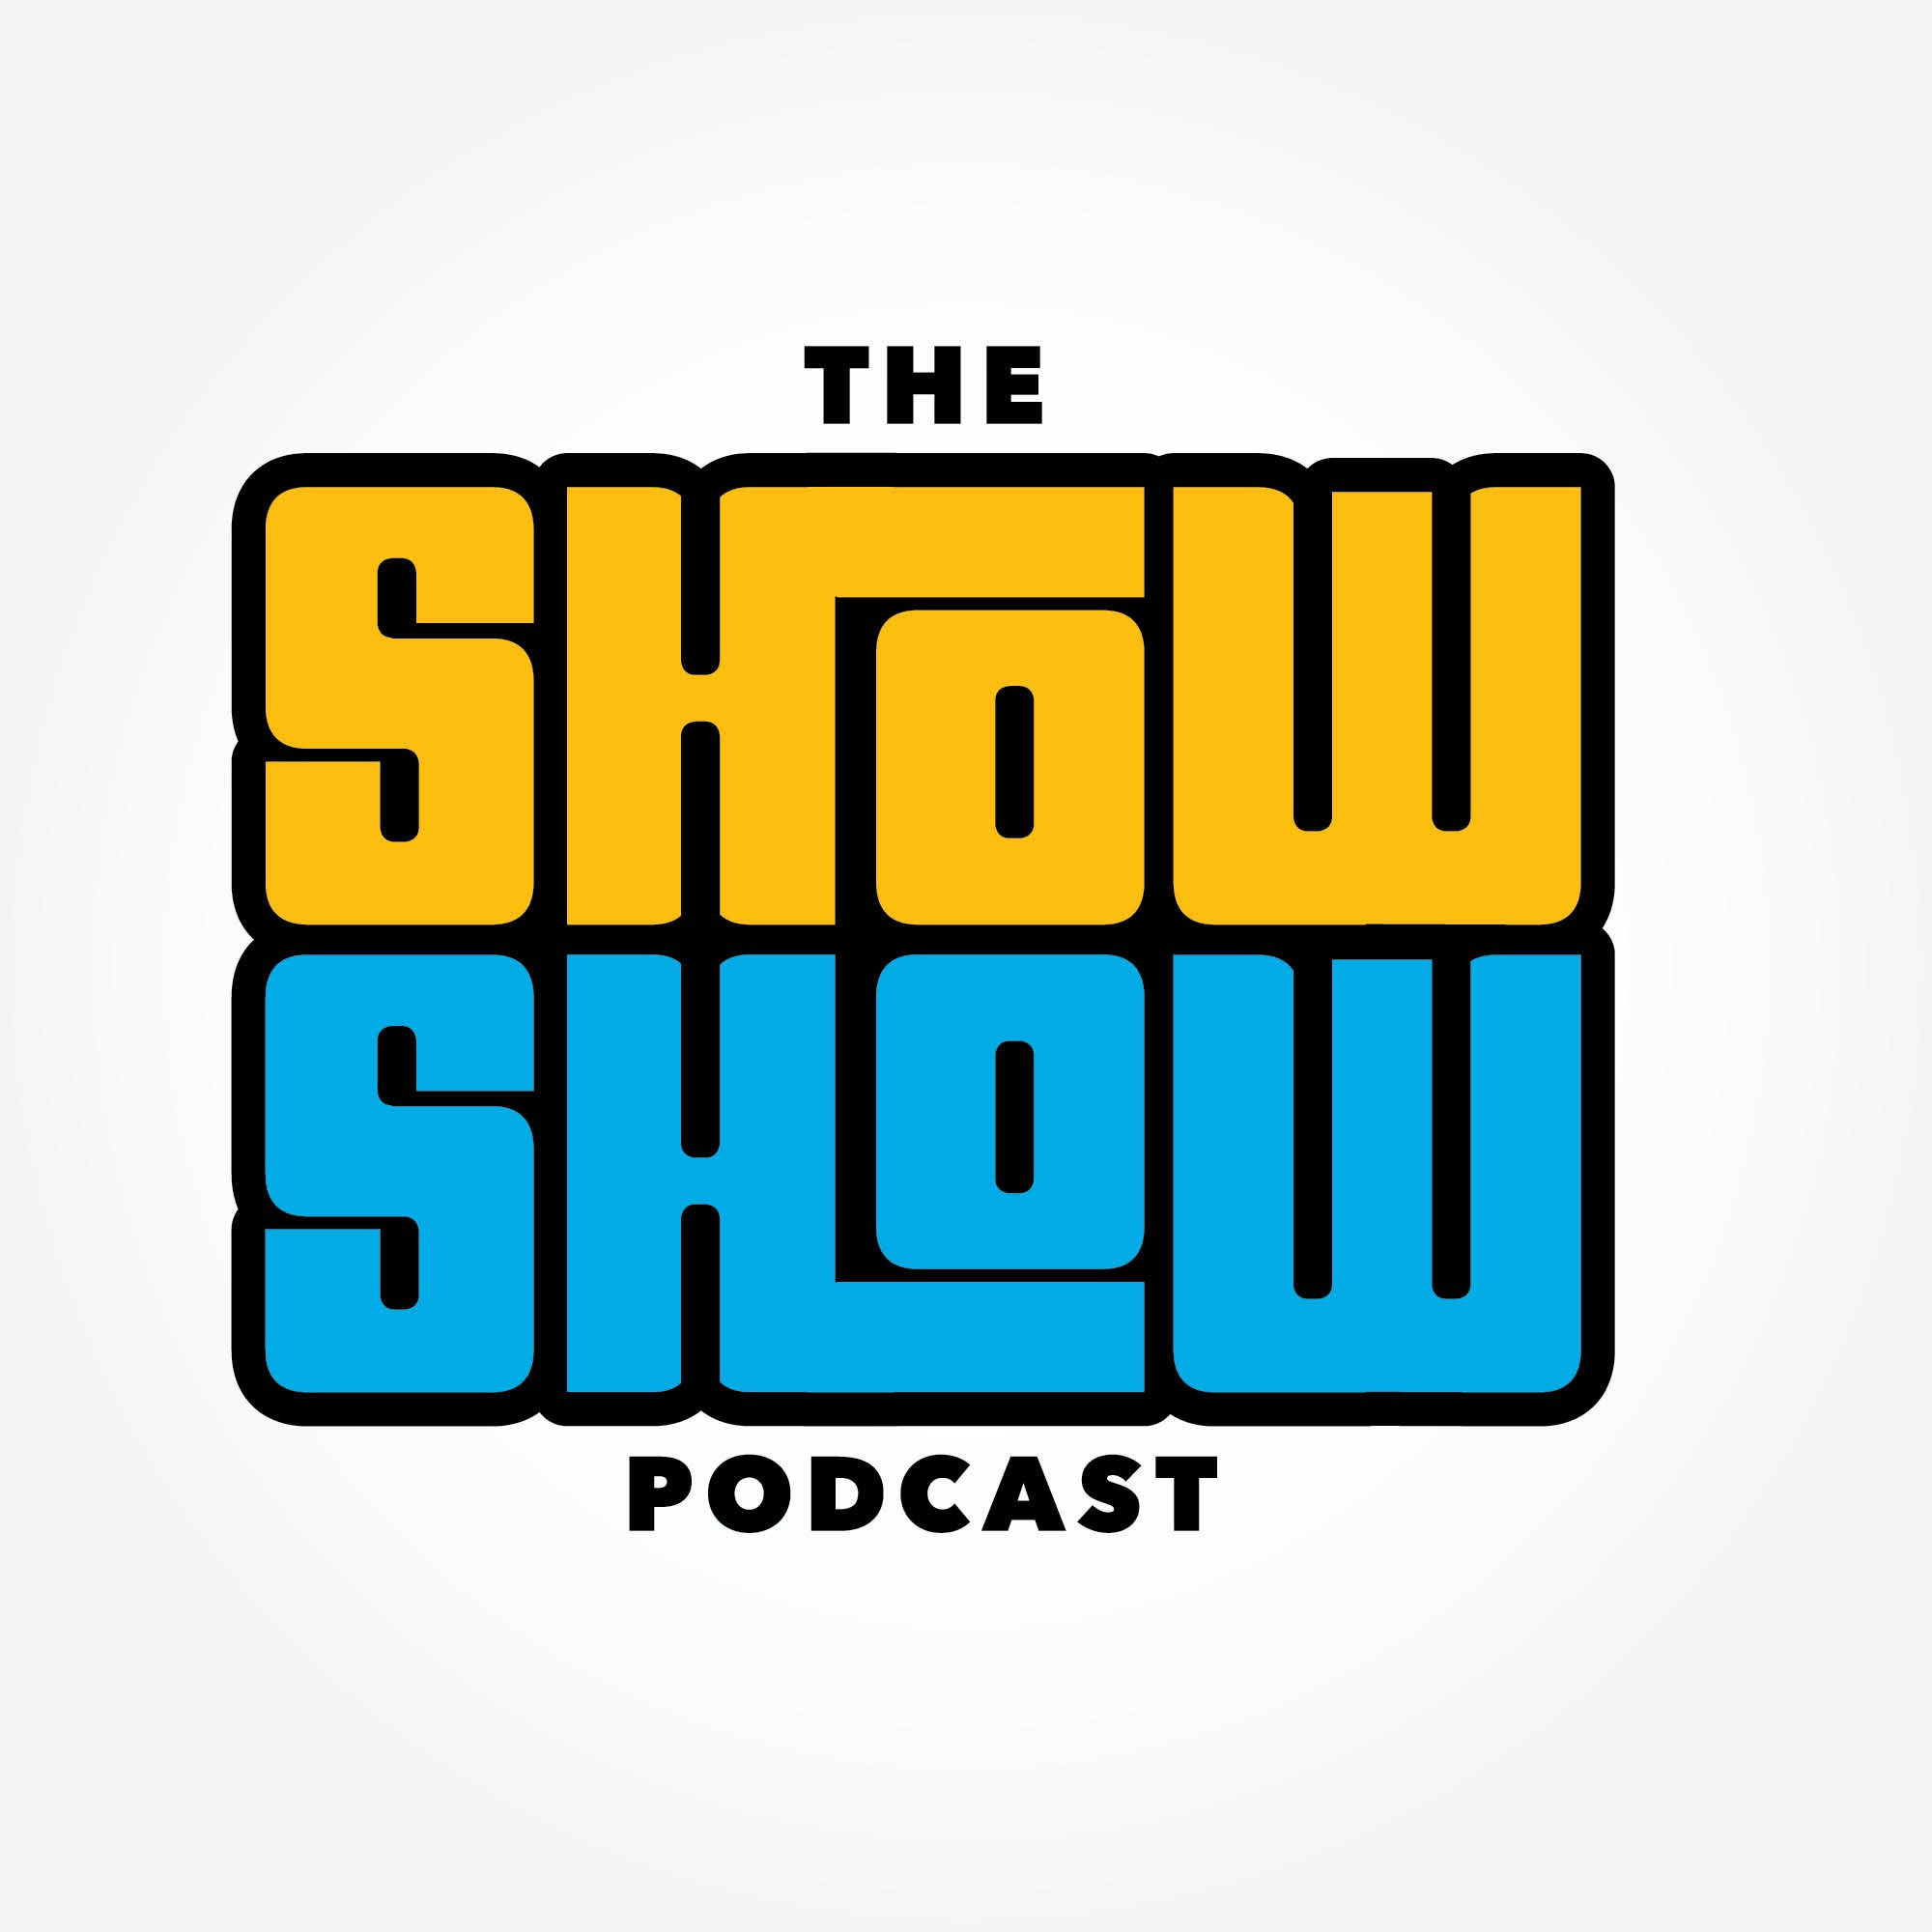 The Show Show Podcast - Design a logo for us